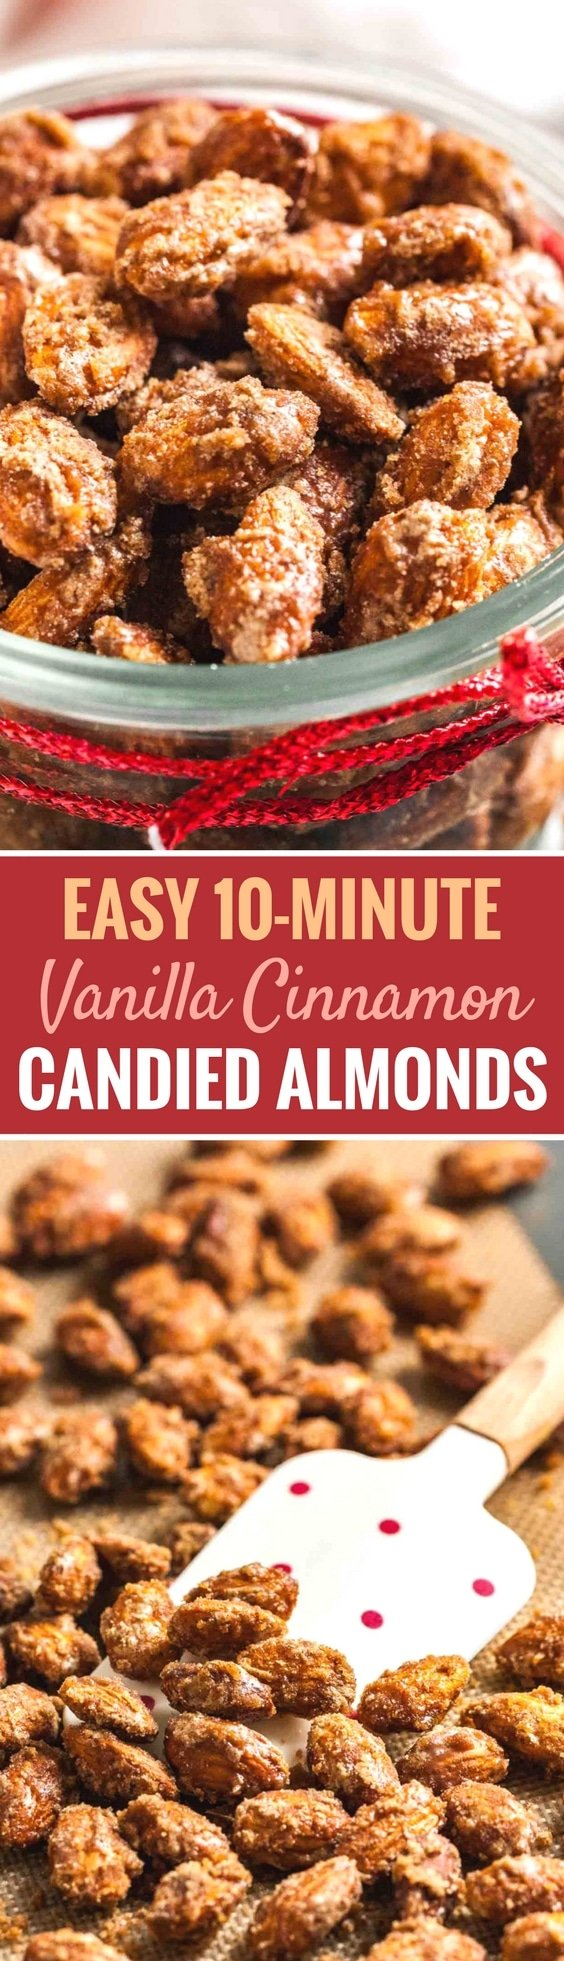 Easy Cinnamon Candied Almonds are sweet, crunchy and make your house smell amazing! These roasted nuts can be made in less than 10 minutes and make a great snack for your next holiday party but also a great homemade gift. #candiednuts #holidayrecipe #cinnamon #almonds